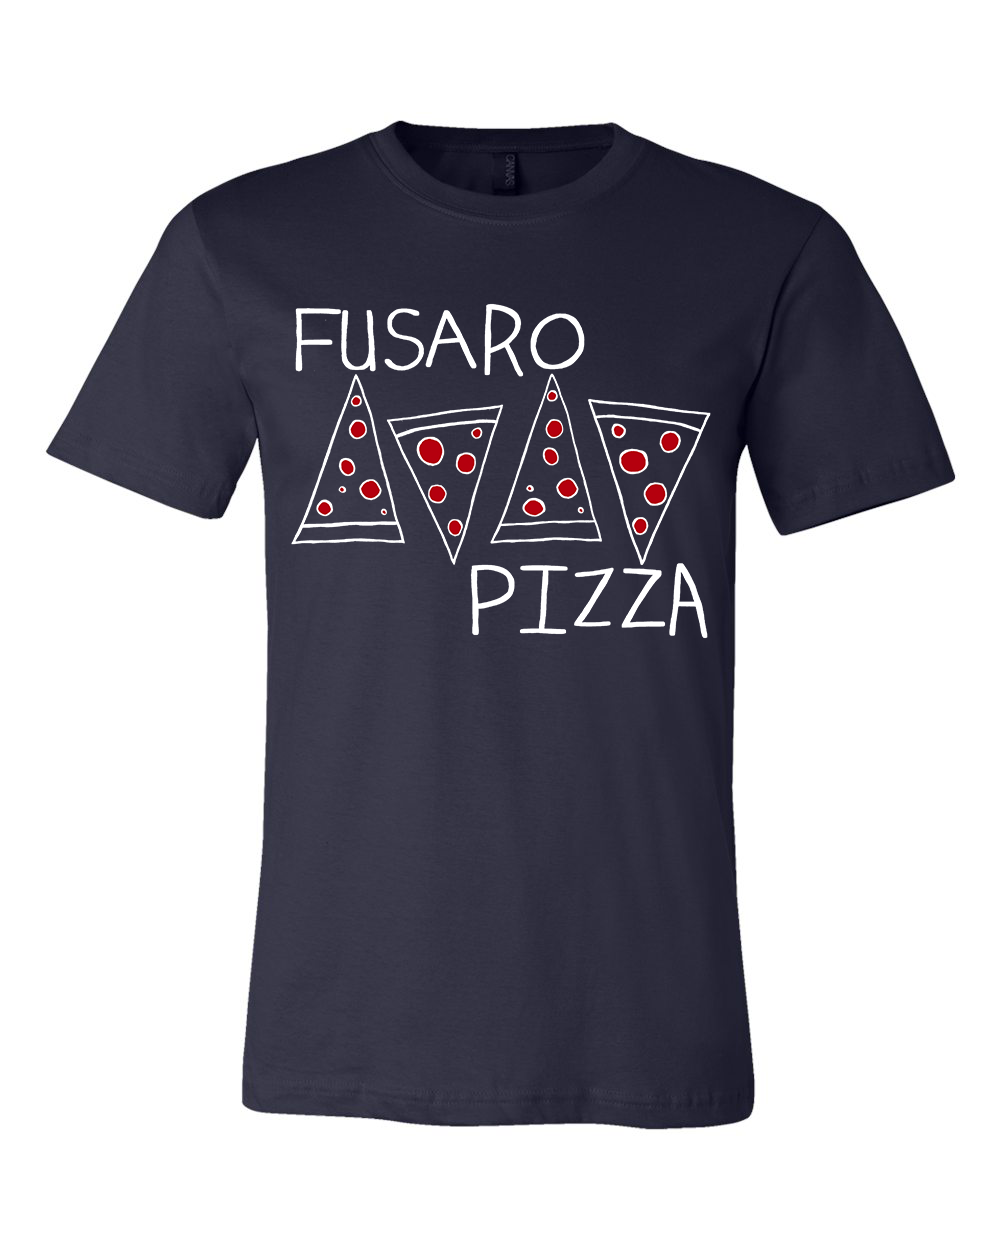 Fusaro Pizza : Slices Tee